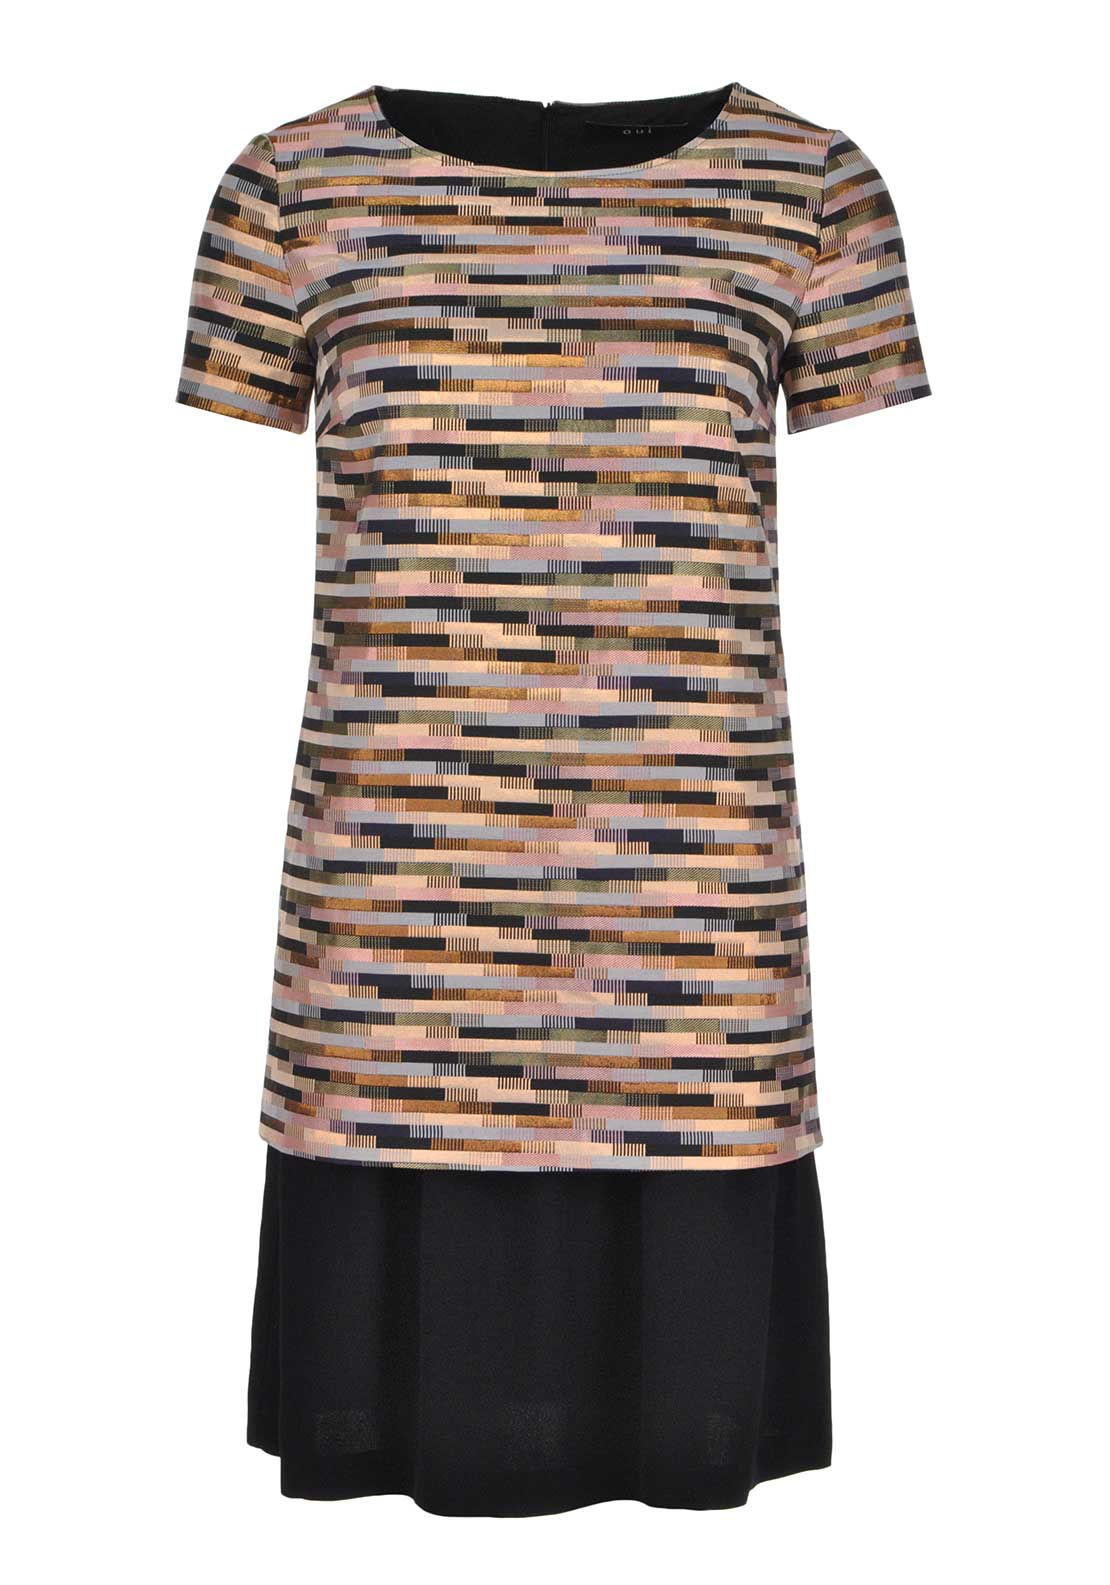 Oui Metallic Sheen Geometric Print Double Layer Tunic Dress, Multi-Coloured